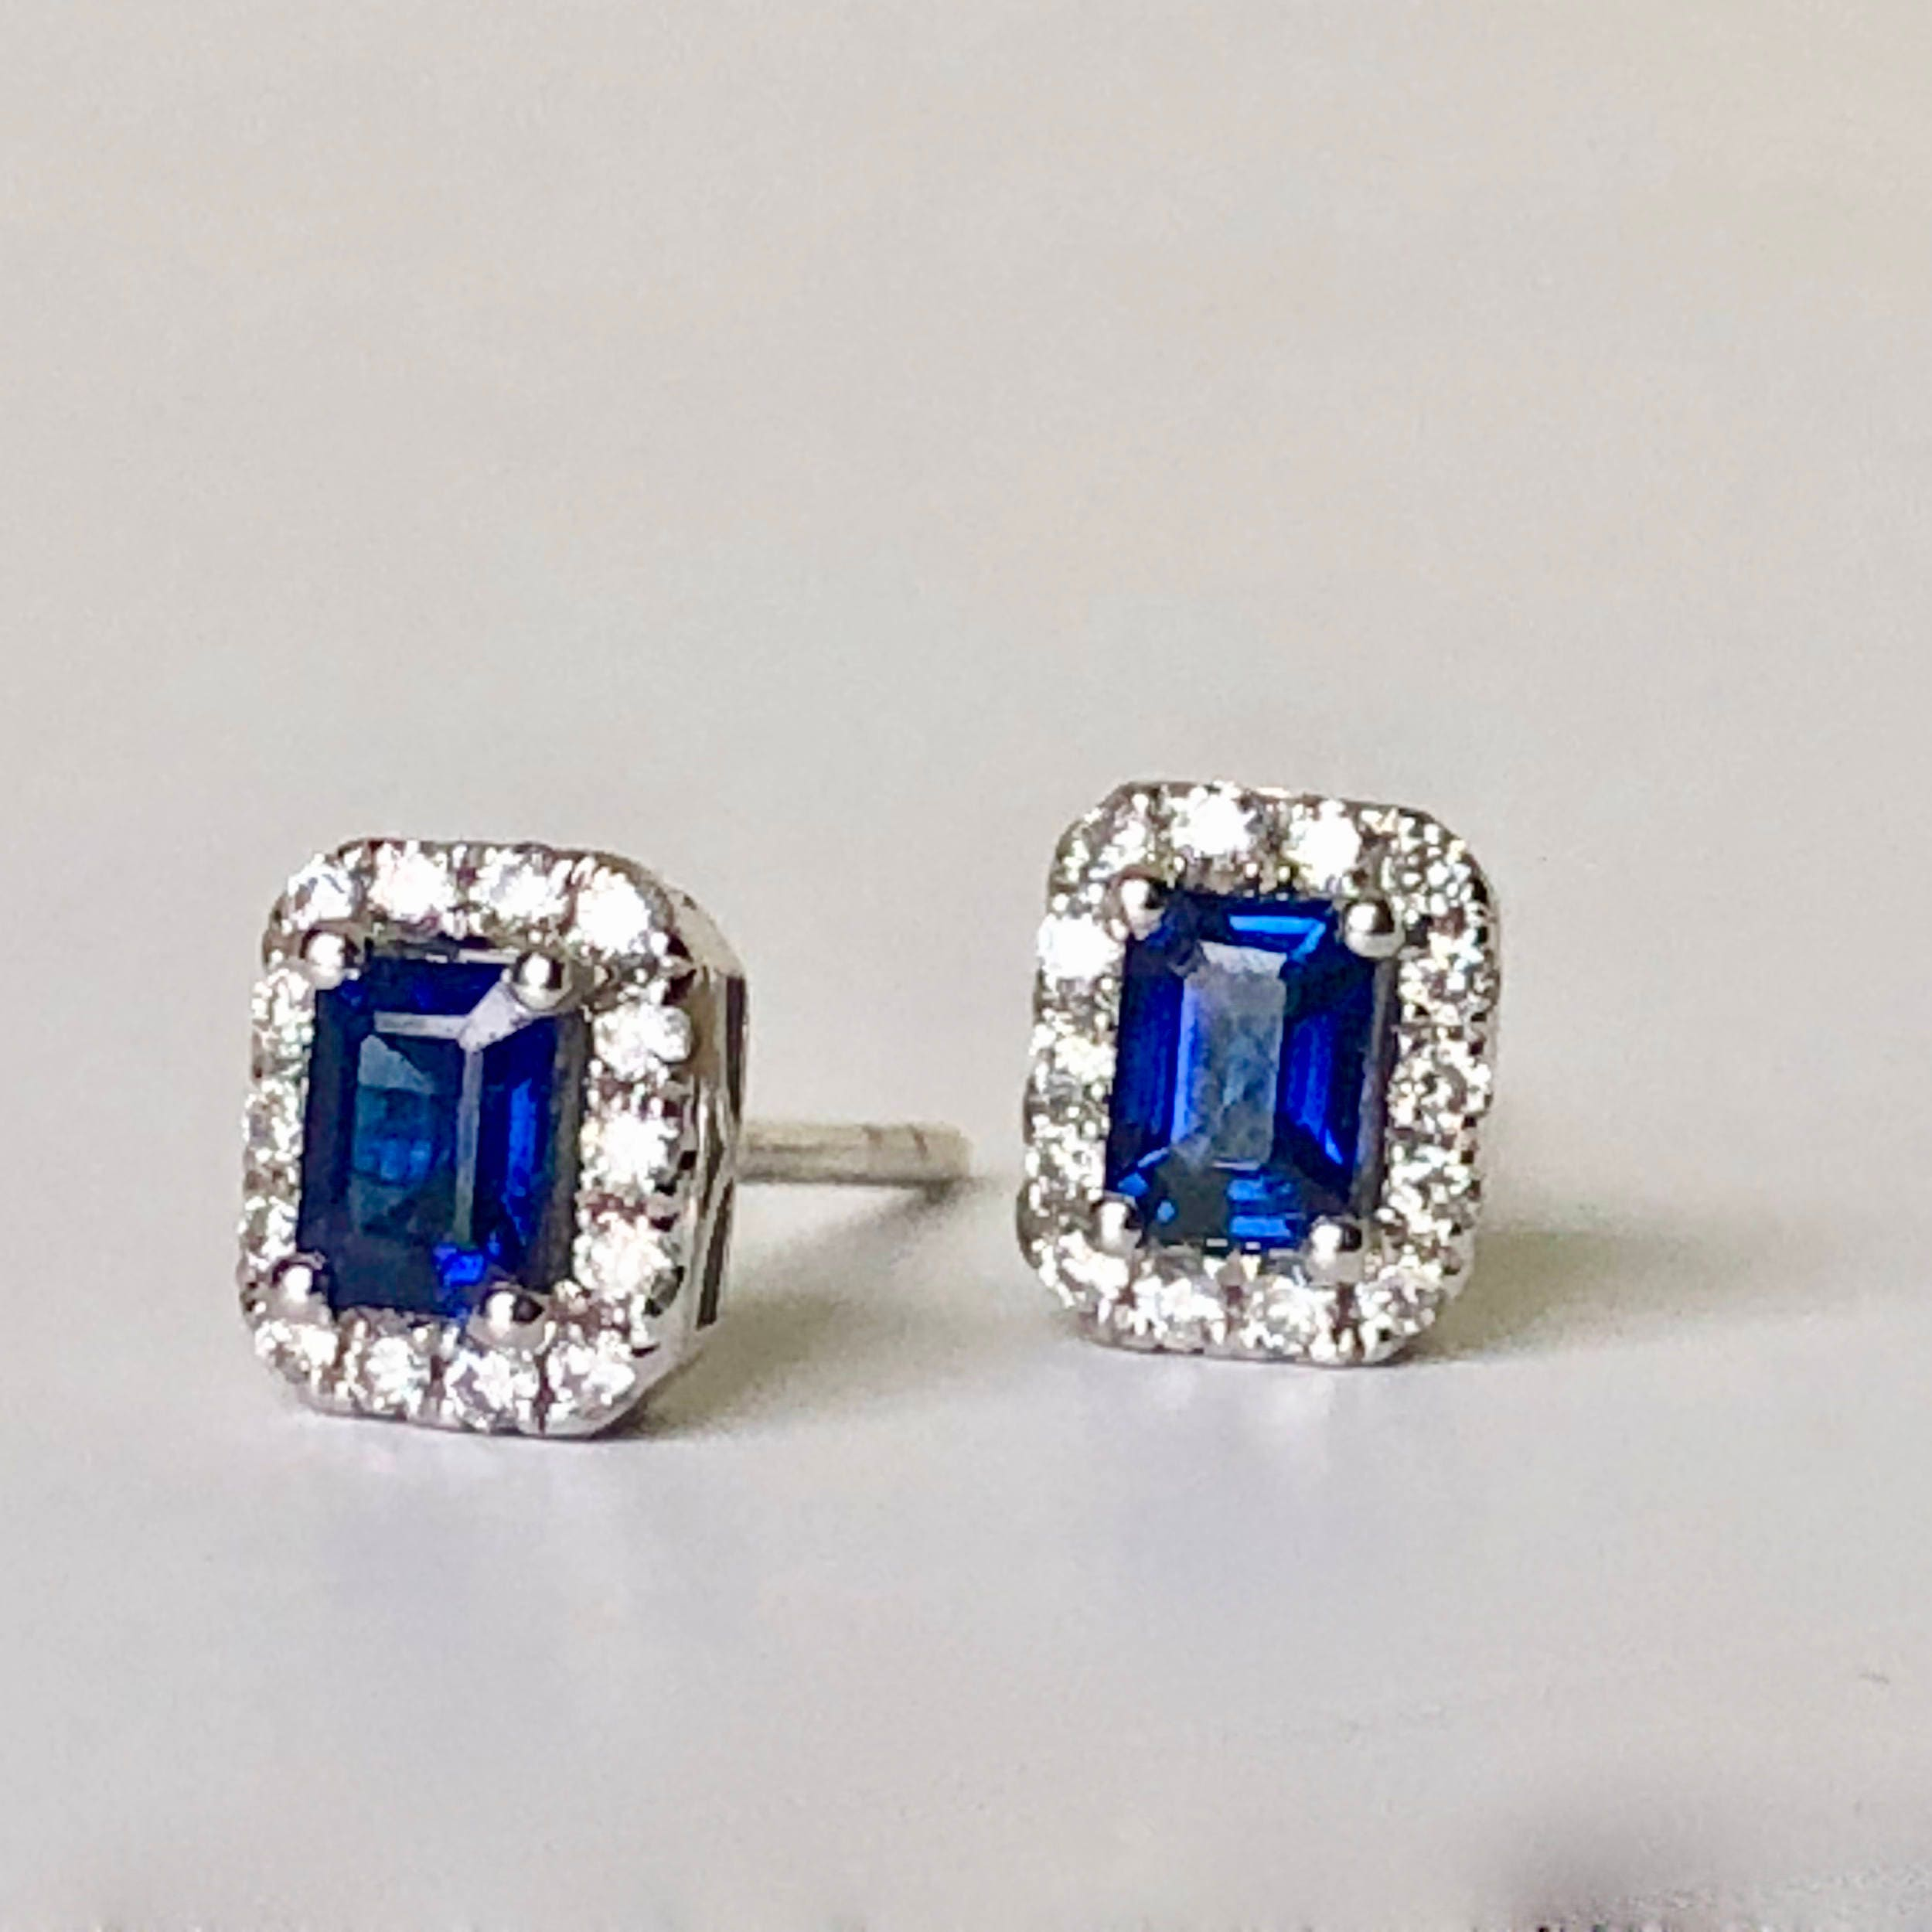 loyalty you sapphire represents gem birthstone focus coster stone is to wisdom tasks banner your they of september diamonds royal helps this the and on say nobility